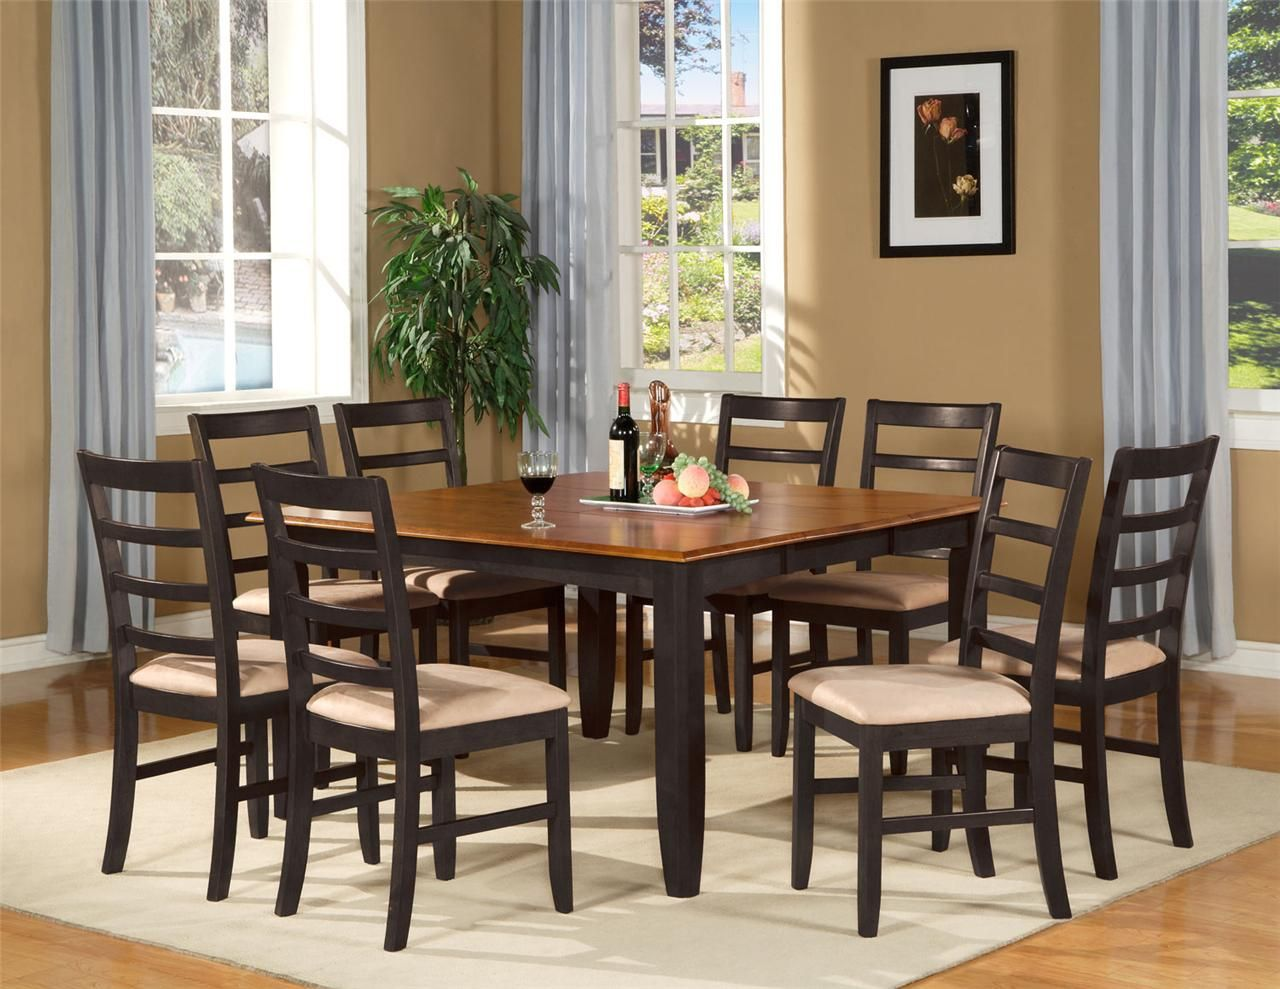 9 pc square dinette dining room table set and 8 chairs | dining